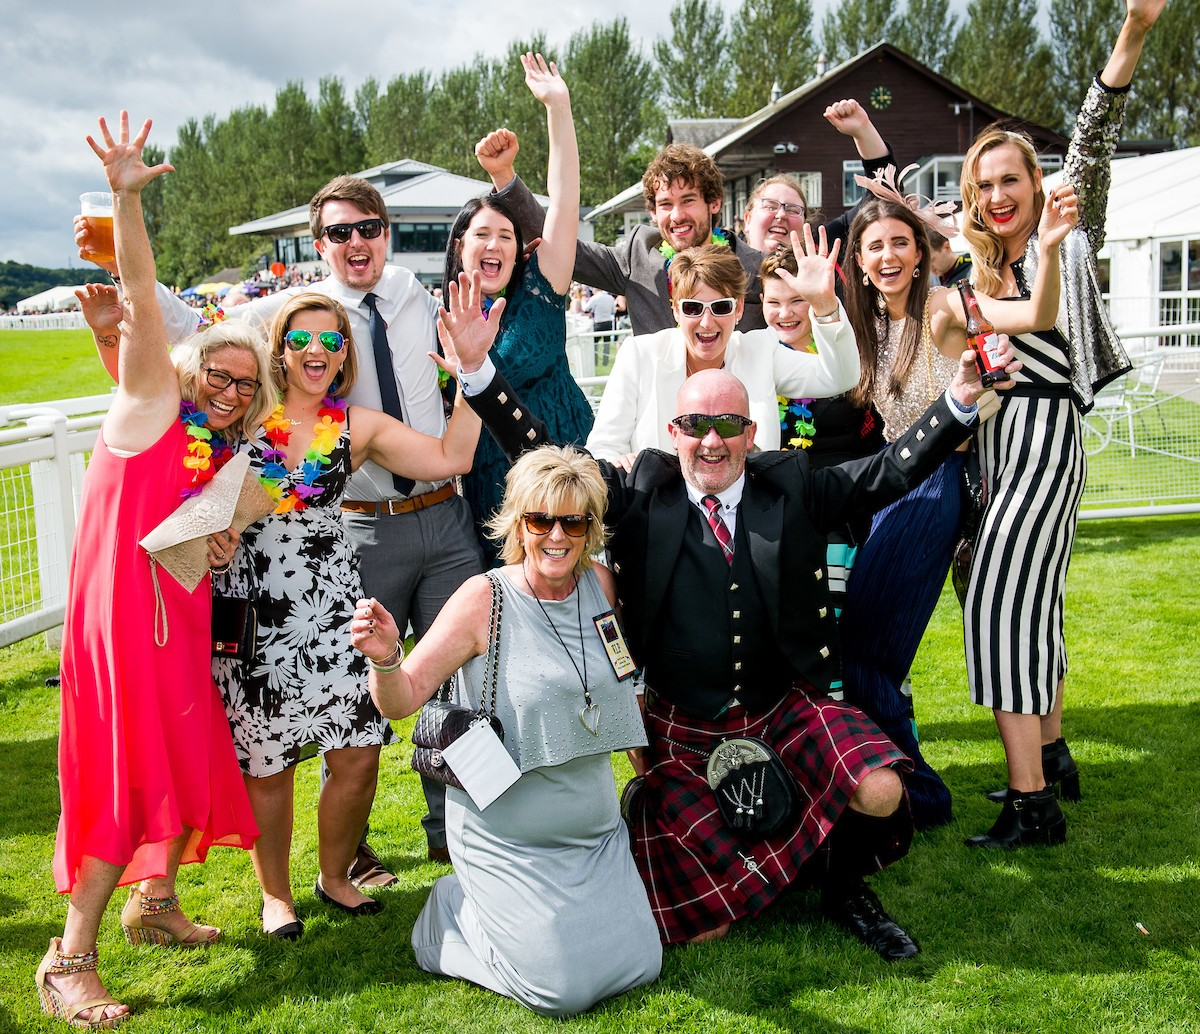 The biggest crowd of the season will flock to Perth Racecourse for a mixture of first-class jump racing and brilliant summer entertainment